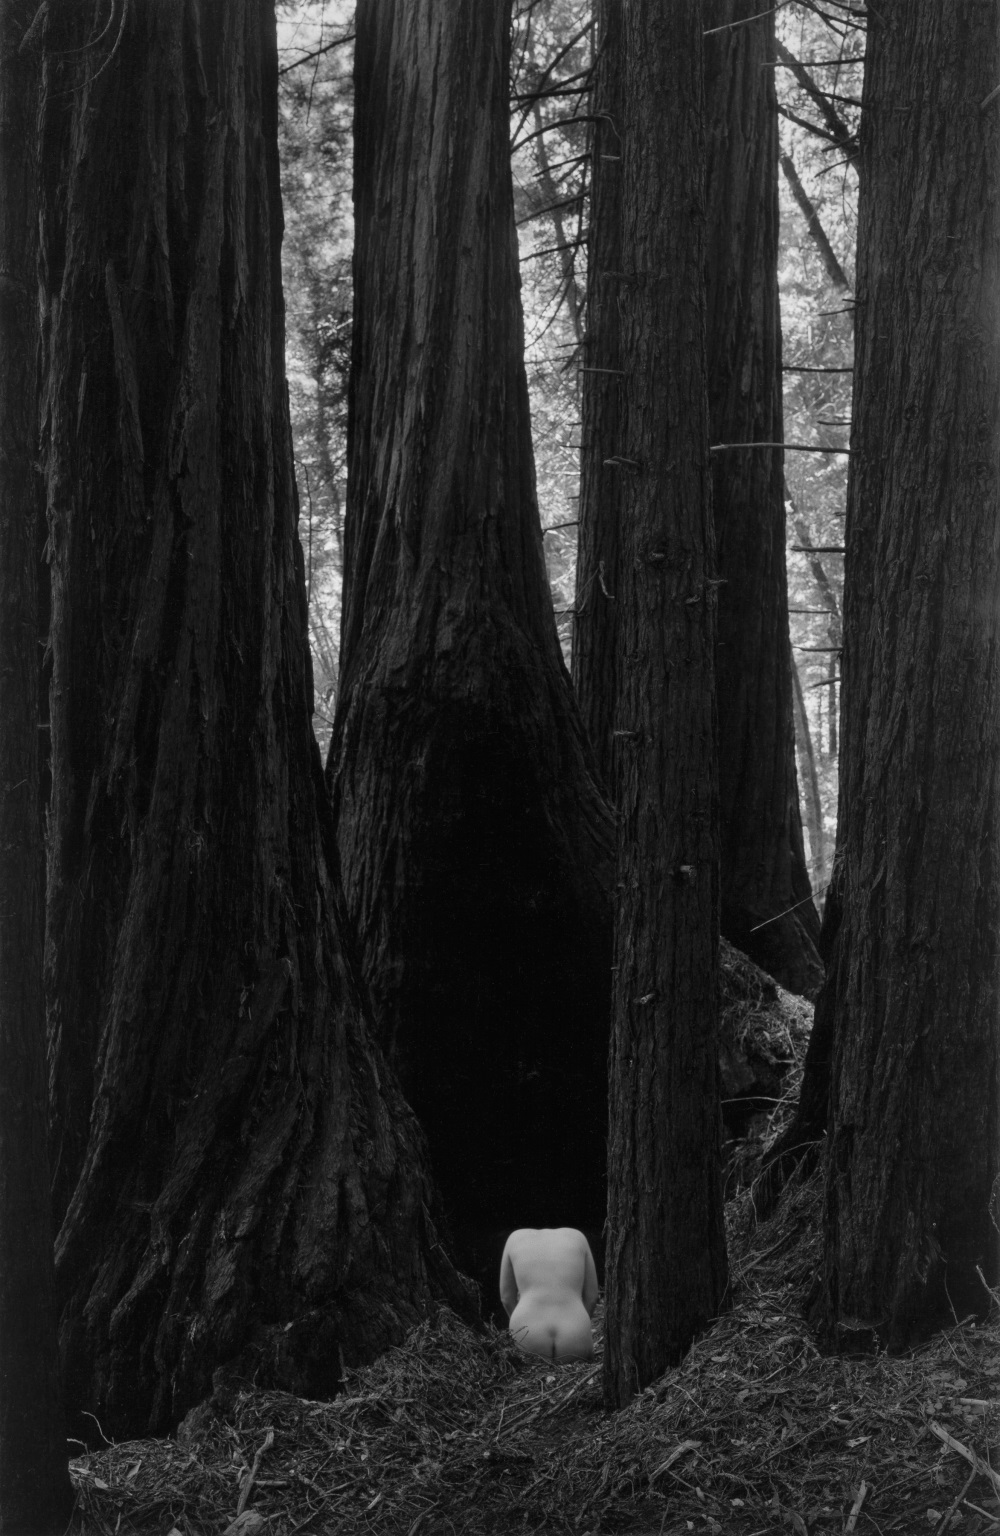 Wynn Bullock, Nude Torso in the Forest, 1958.